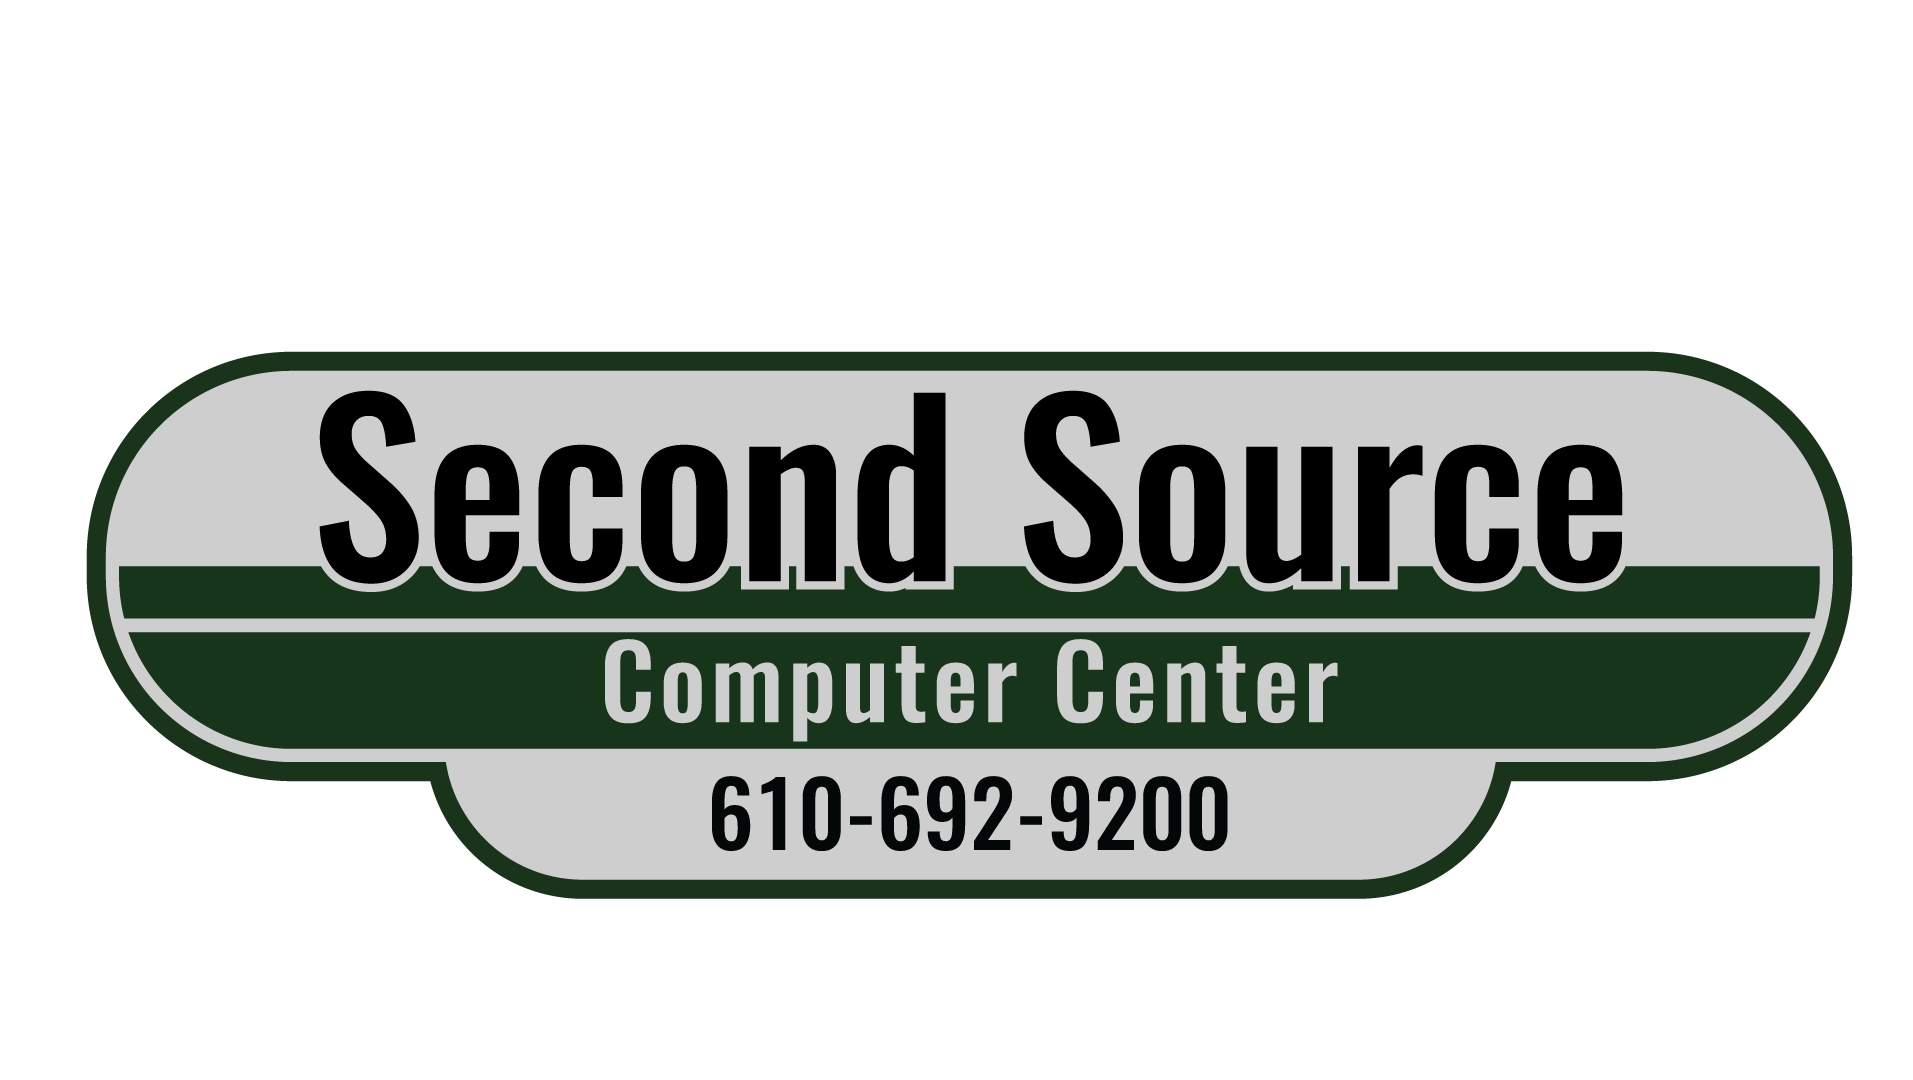 Your First Choice for New and Refurbished Computers since 1992